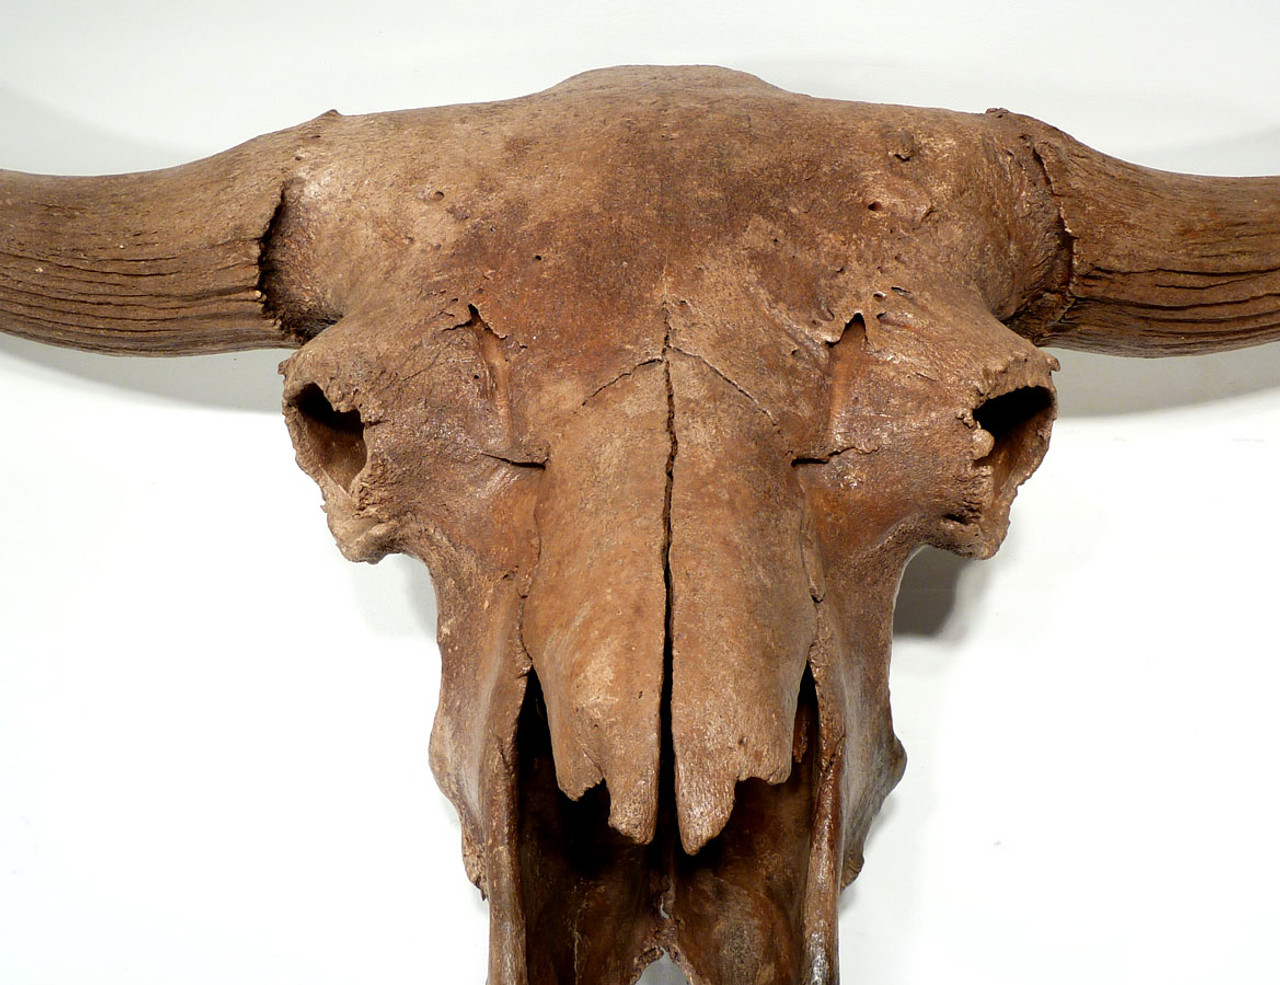 MUSEUM-CLASS COMPLETE EUROPEAN ICE AGE STEPPE WISENT BISON SKULL FROM EUROPE *BX001